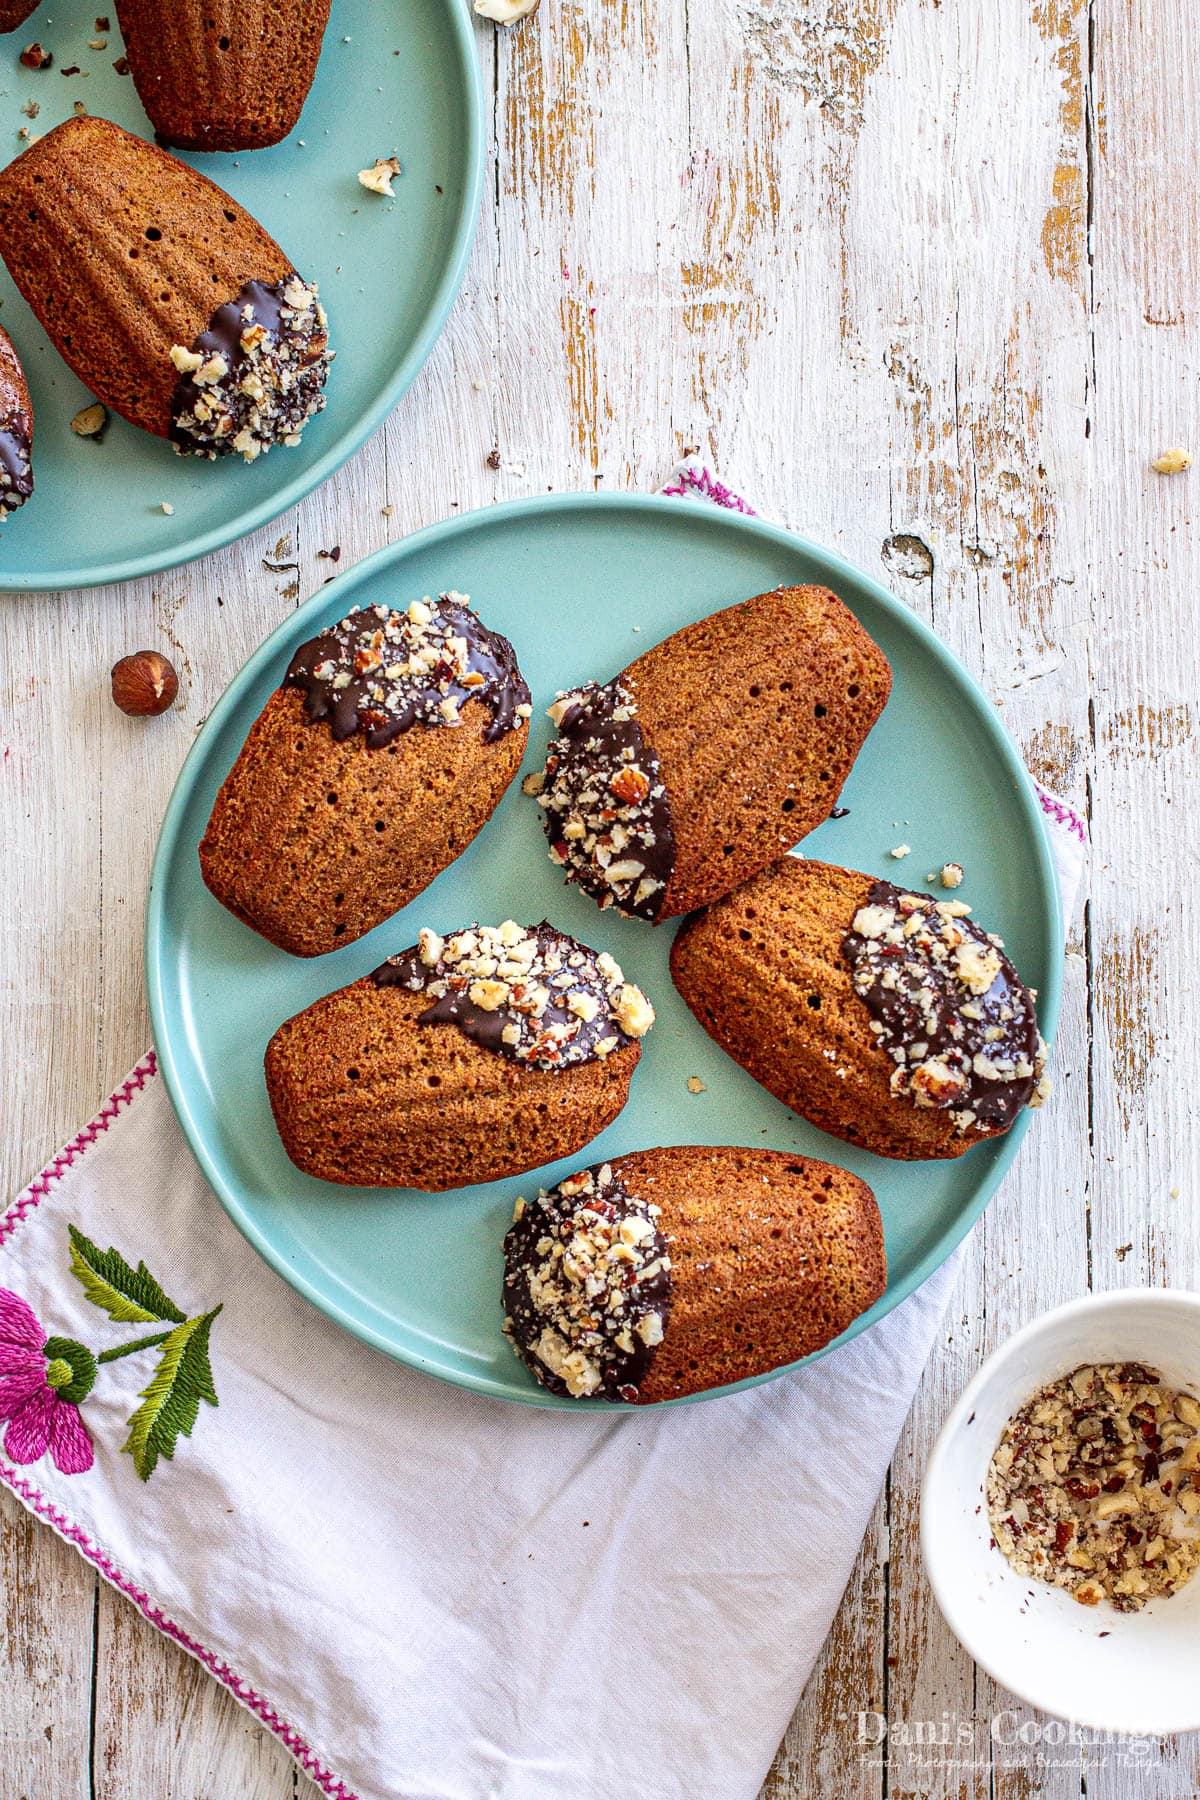 two plates with chocolate coated hazelnut madeleines on a wooden background